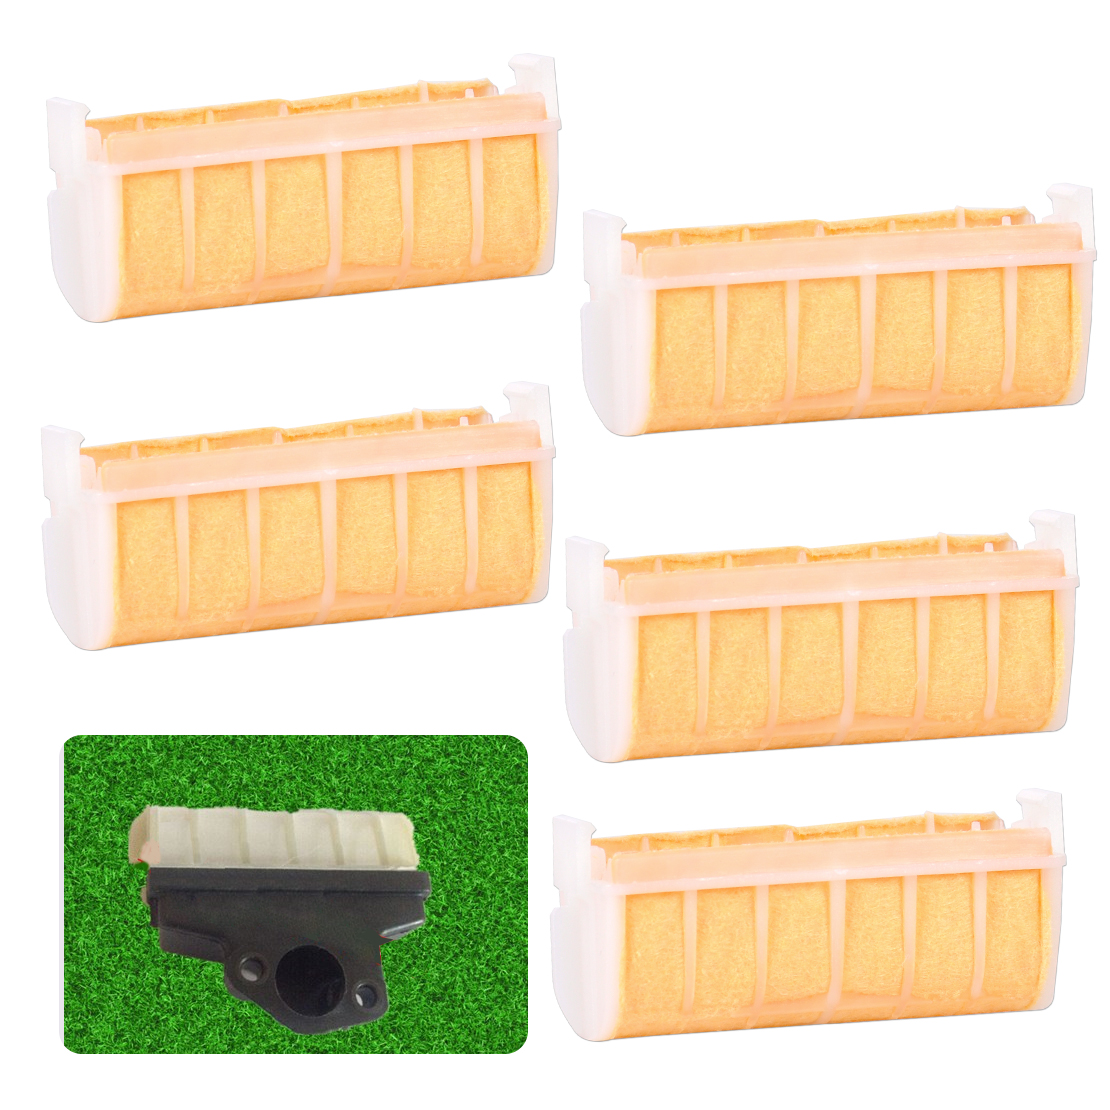 LETAOSK High Quality High Quality 5 Pcs Air Filter Replacement Fit For Stihl MS210 MS230 MS250 021 023 025 Chainsaw